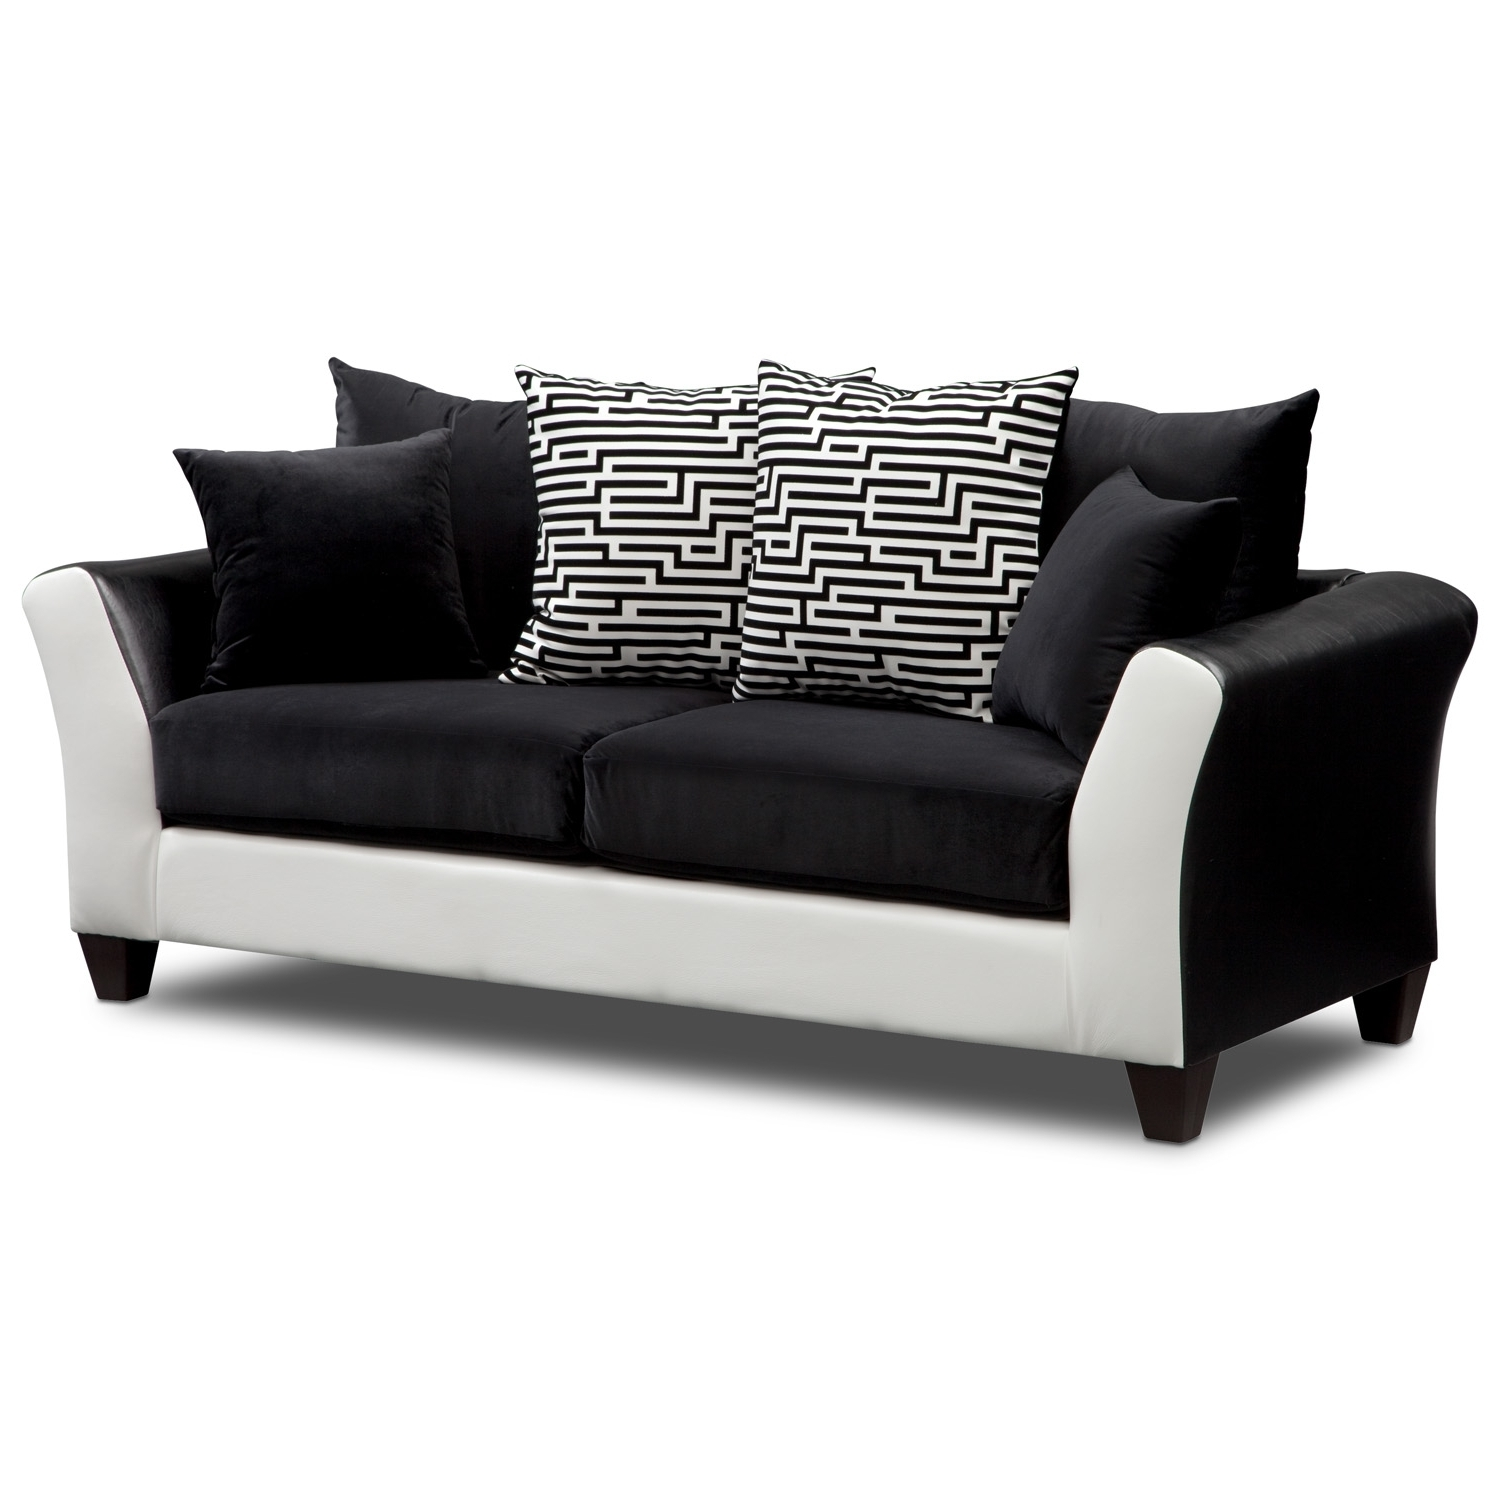 Value City Sofas In Widely Used Smart Idea Value City Furniture Sofas Gray At Sofa Sleeper Couches (View 12 of 15)